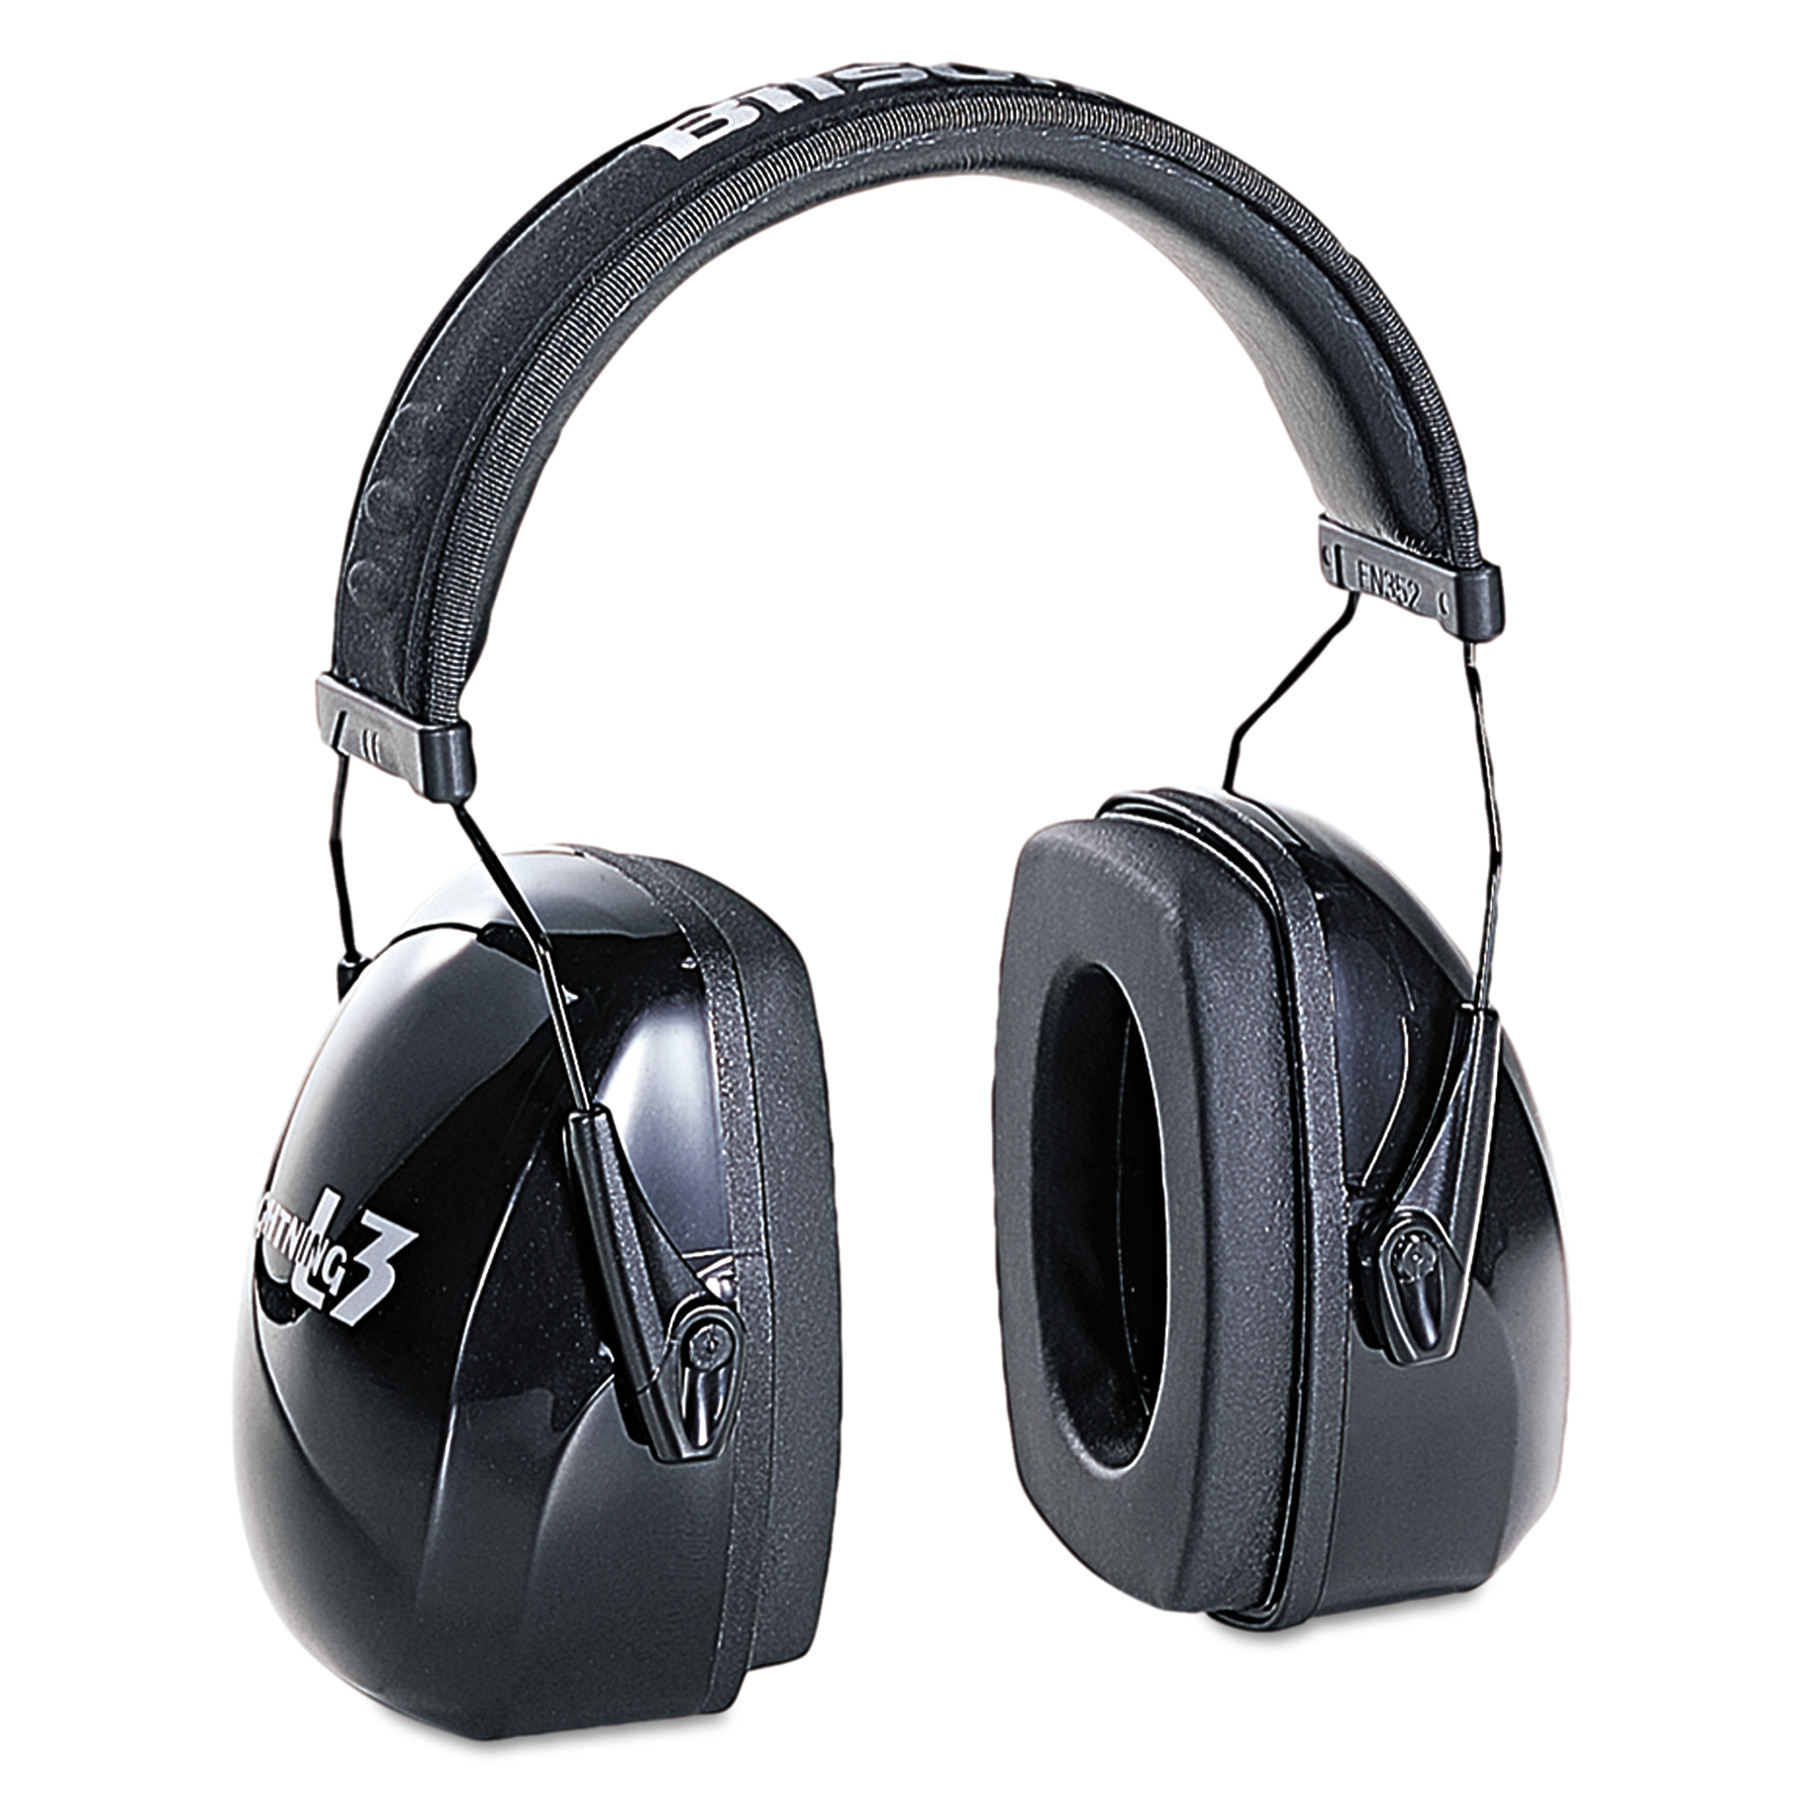 Howard Leight by Honeywell Leightning L3 Noise-Blocking Earmuffs, 30NRR, Black